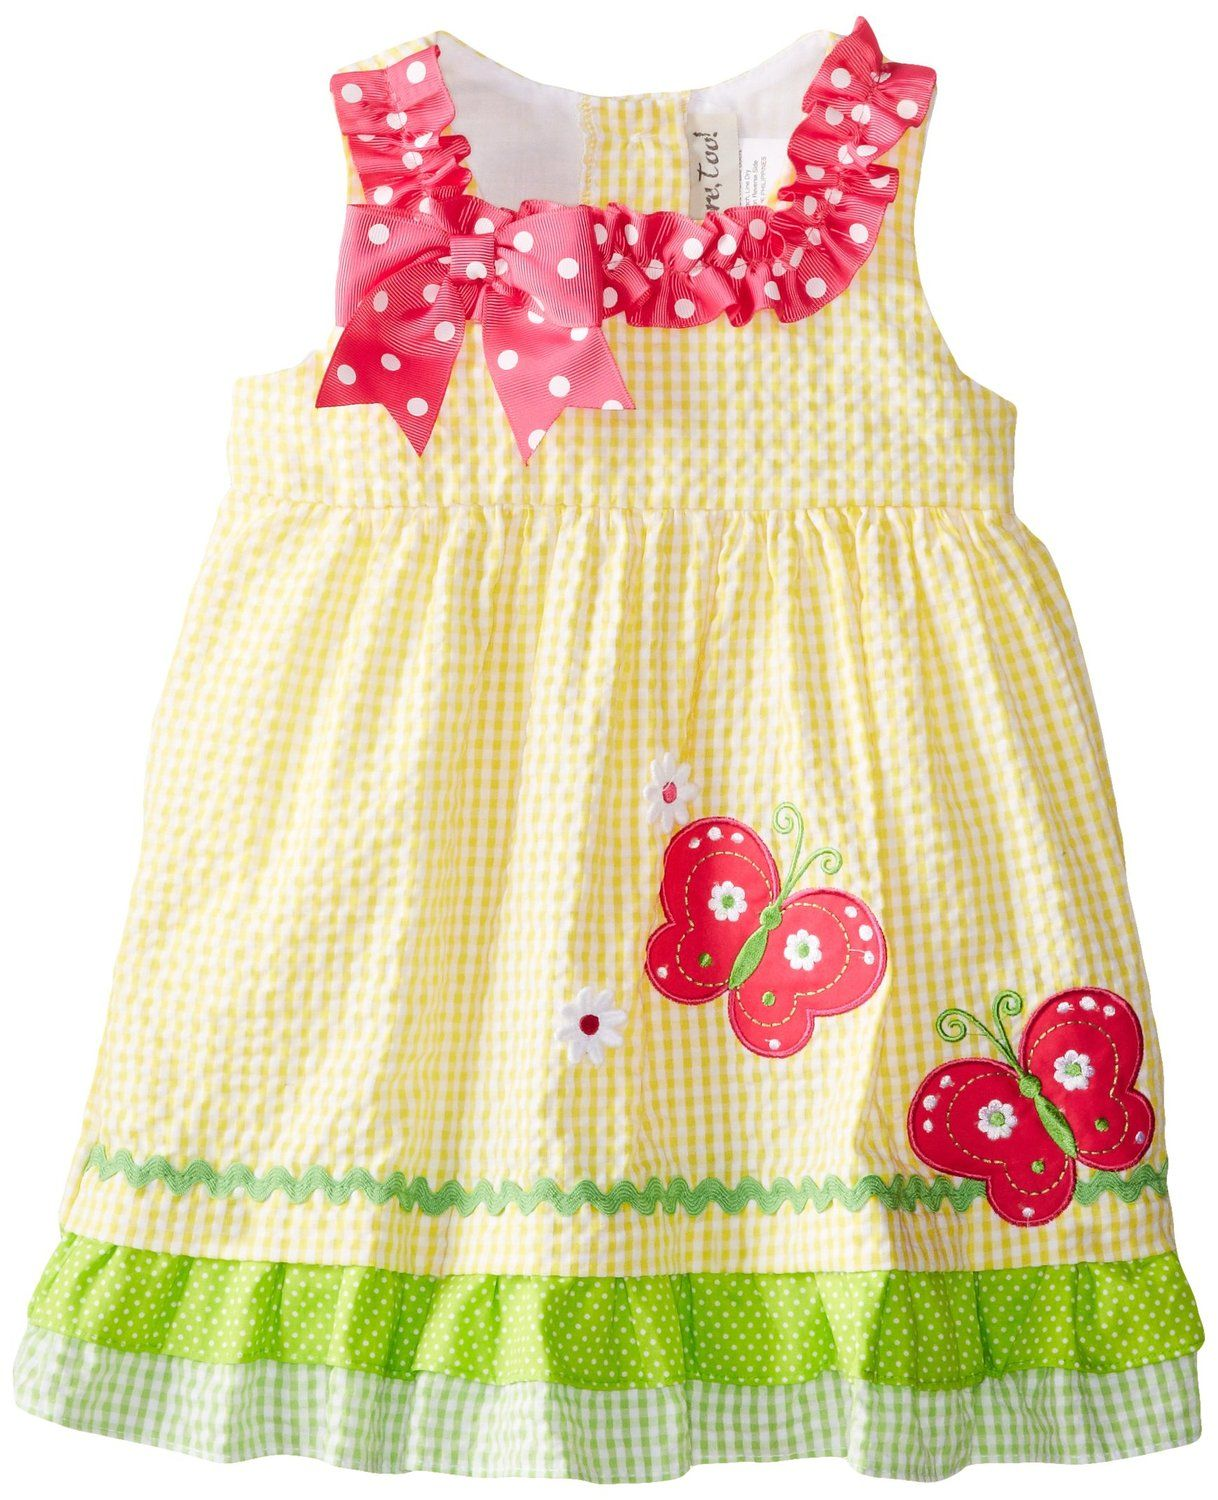 2bc77aaf3 Amazon.com: Rare Editions Baby Baby-Girls Infant Check Seersucker Dress:  Clothing